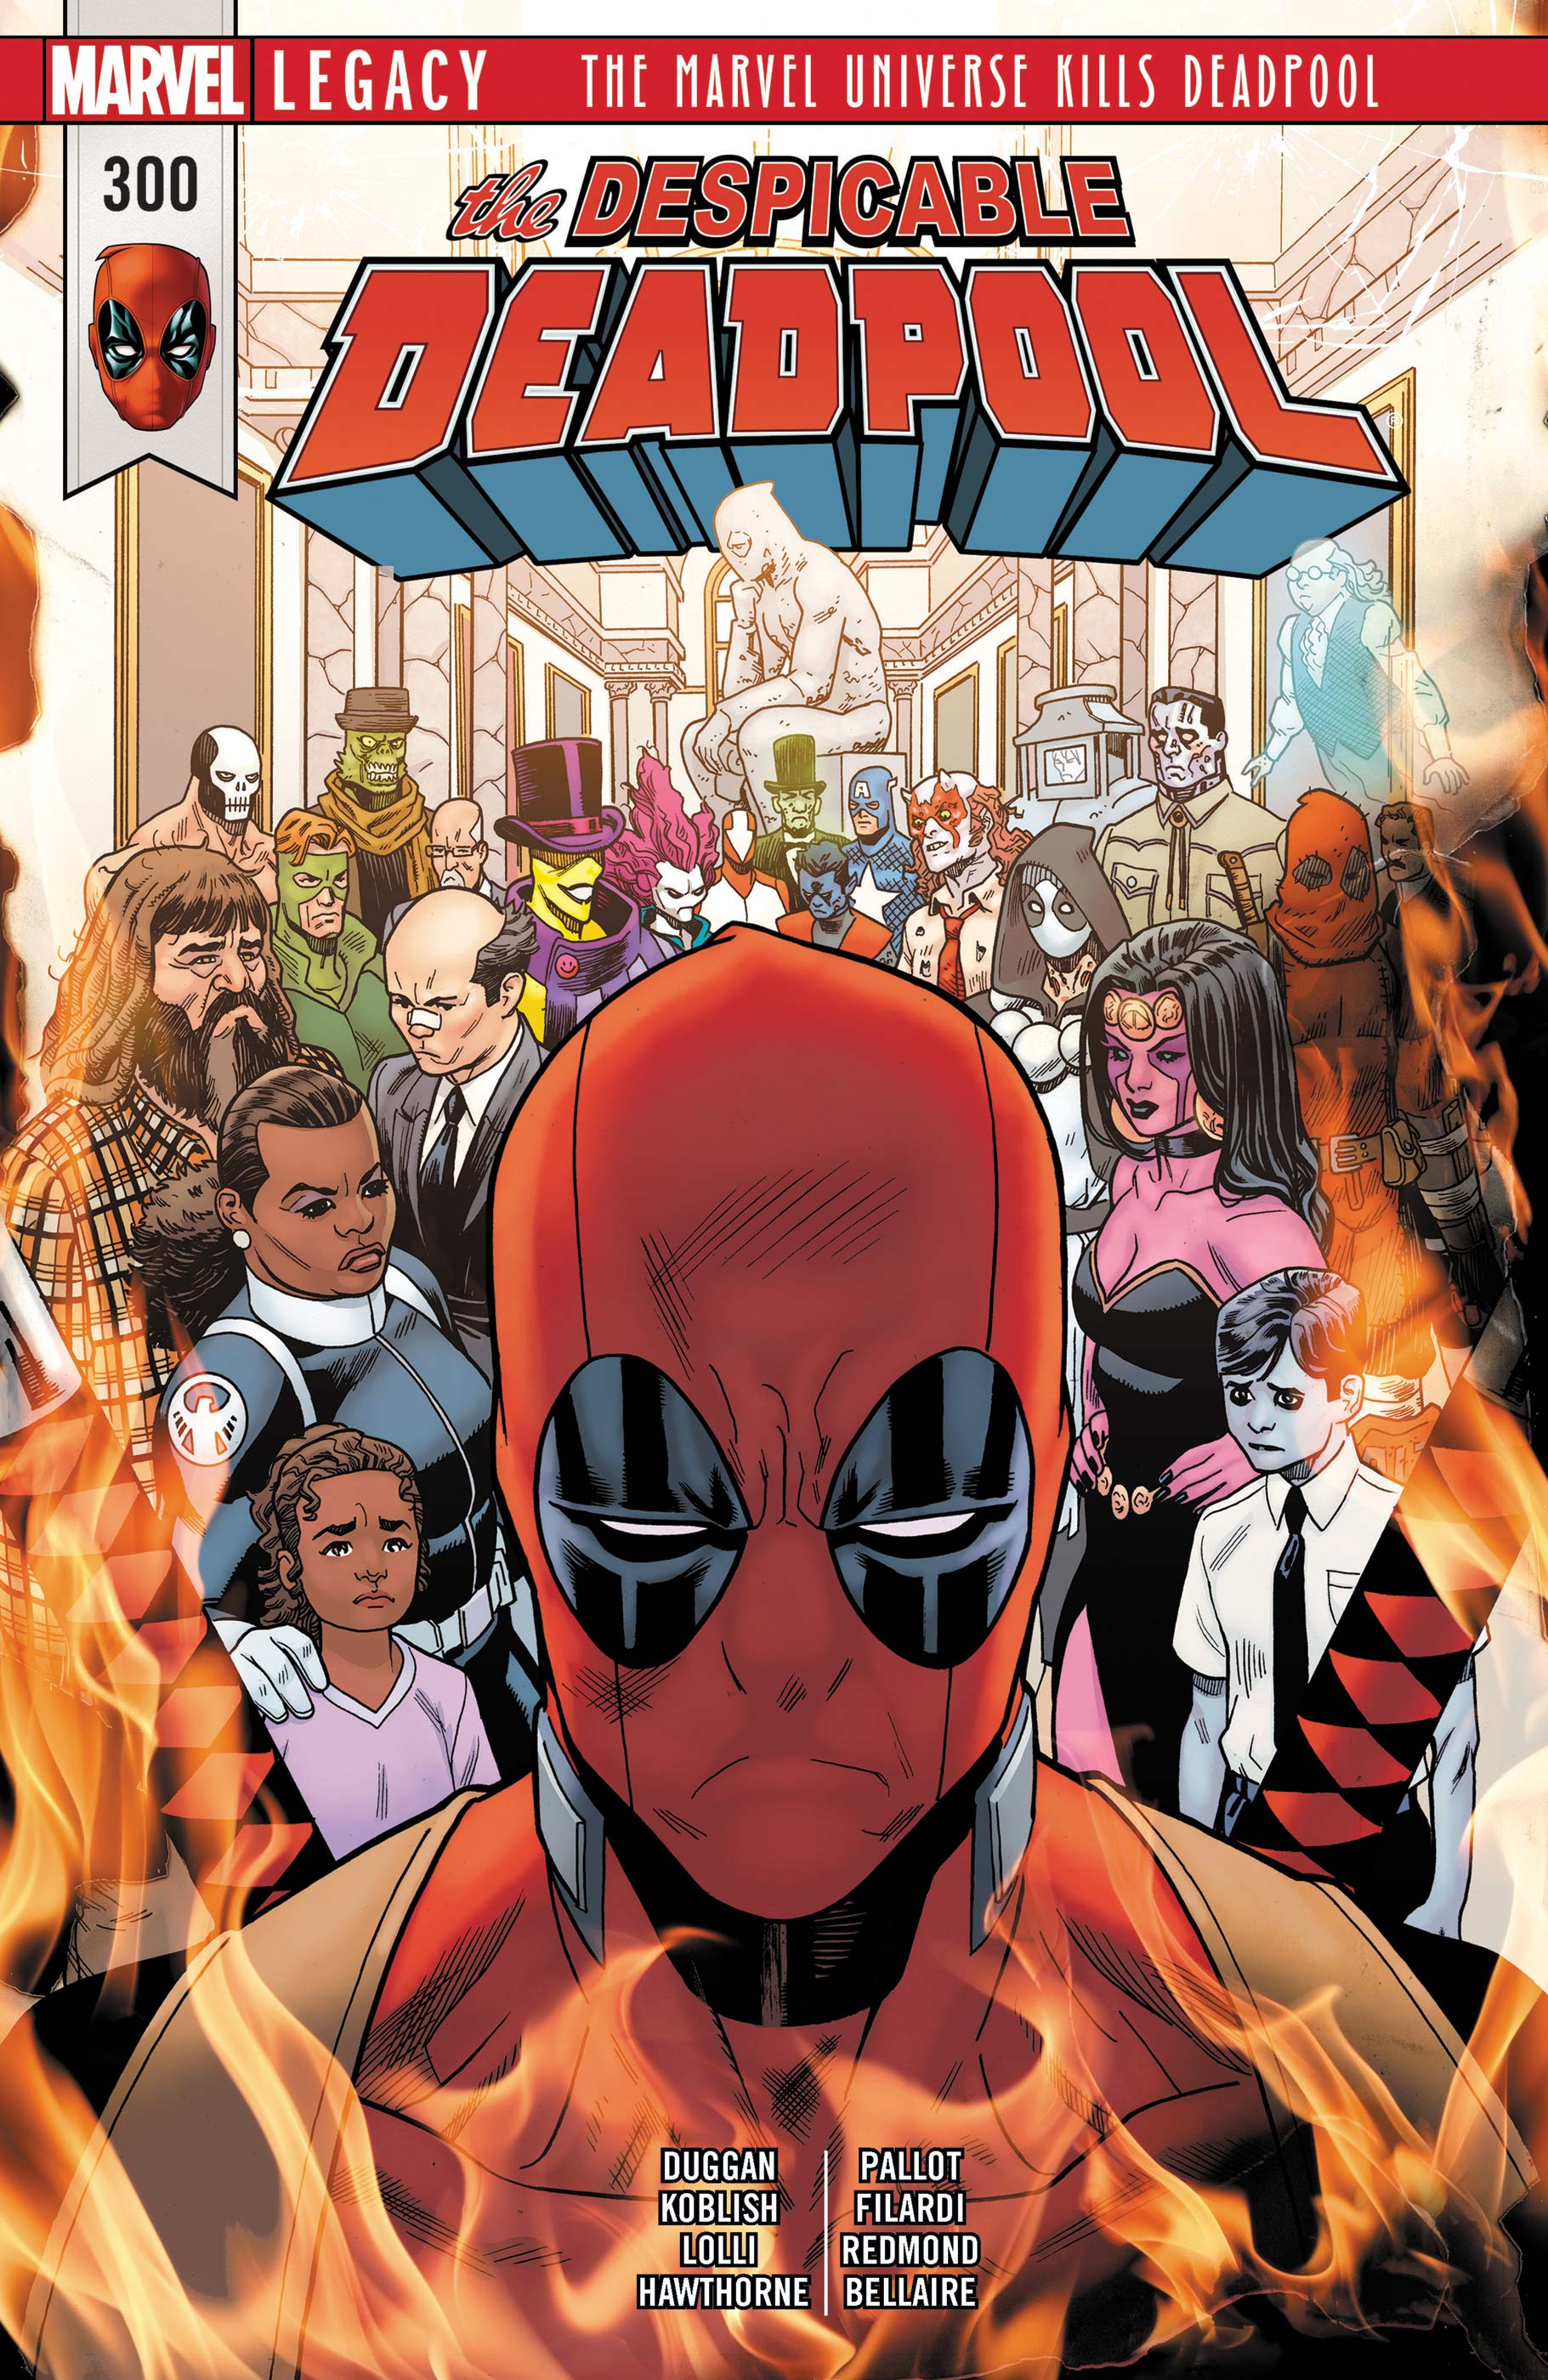 Despicable Deadpool (2017) #300